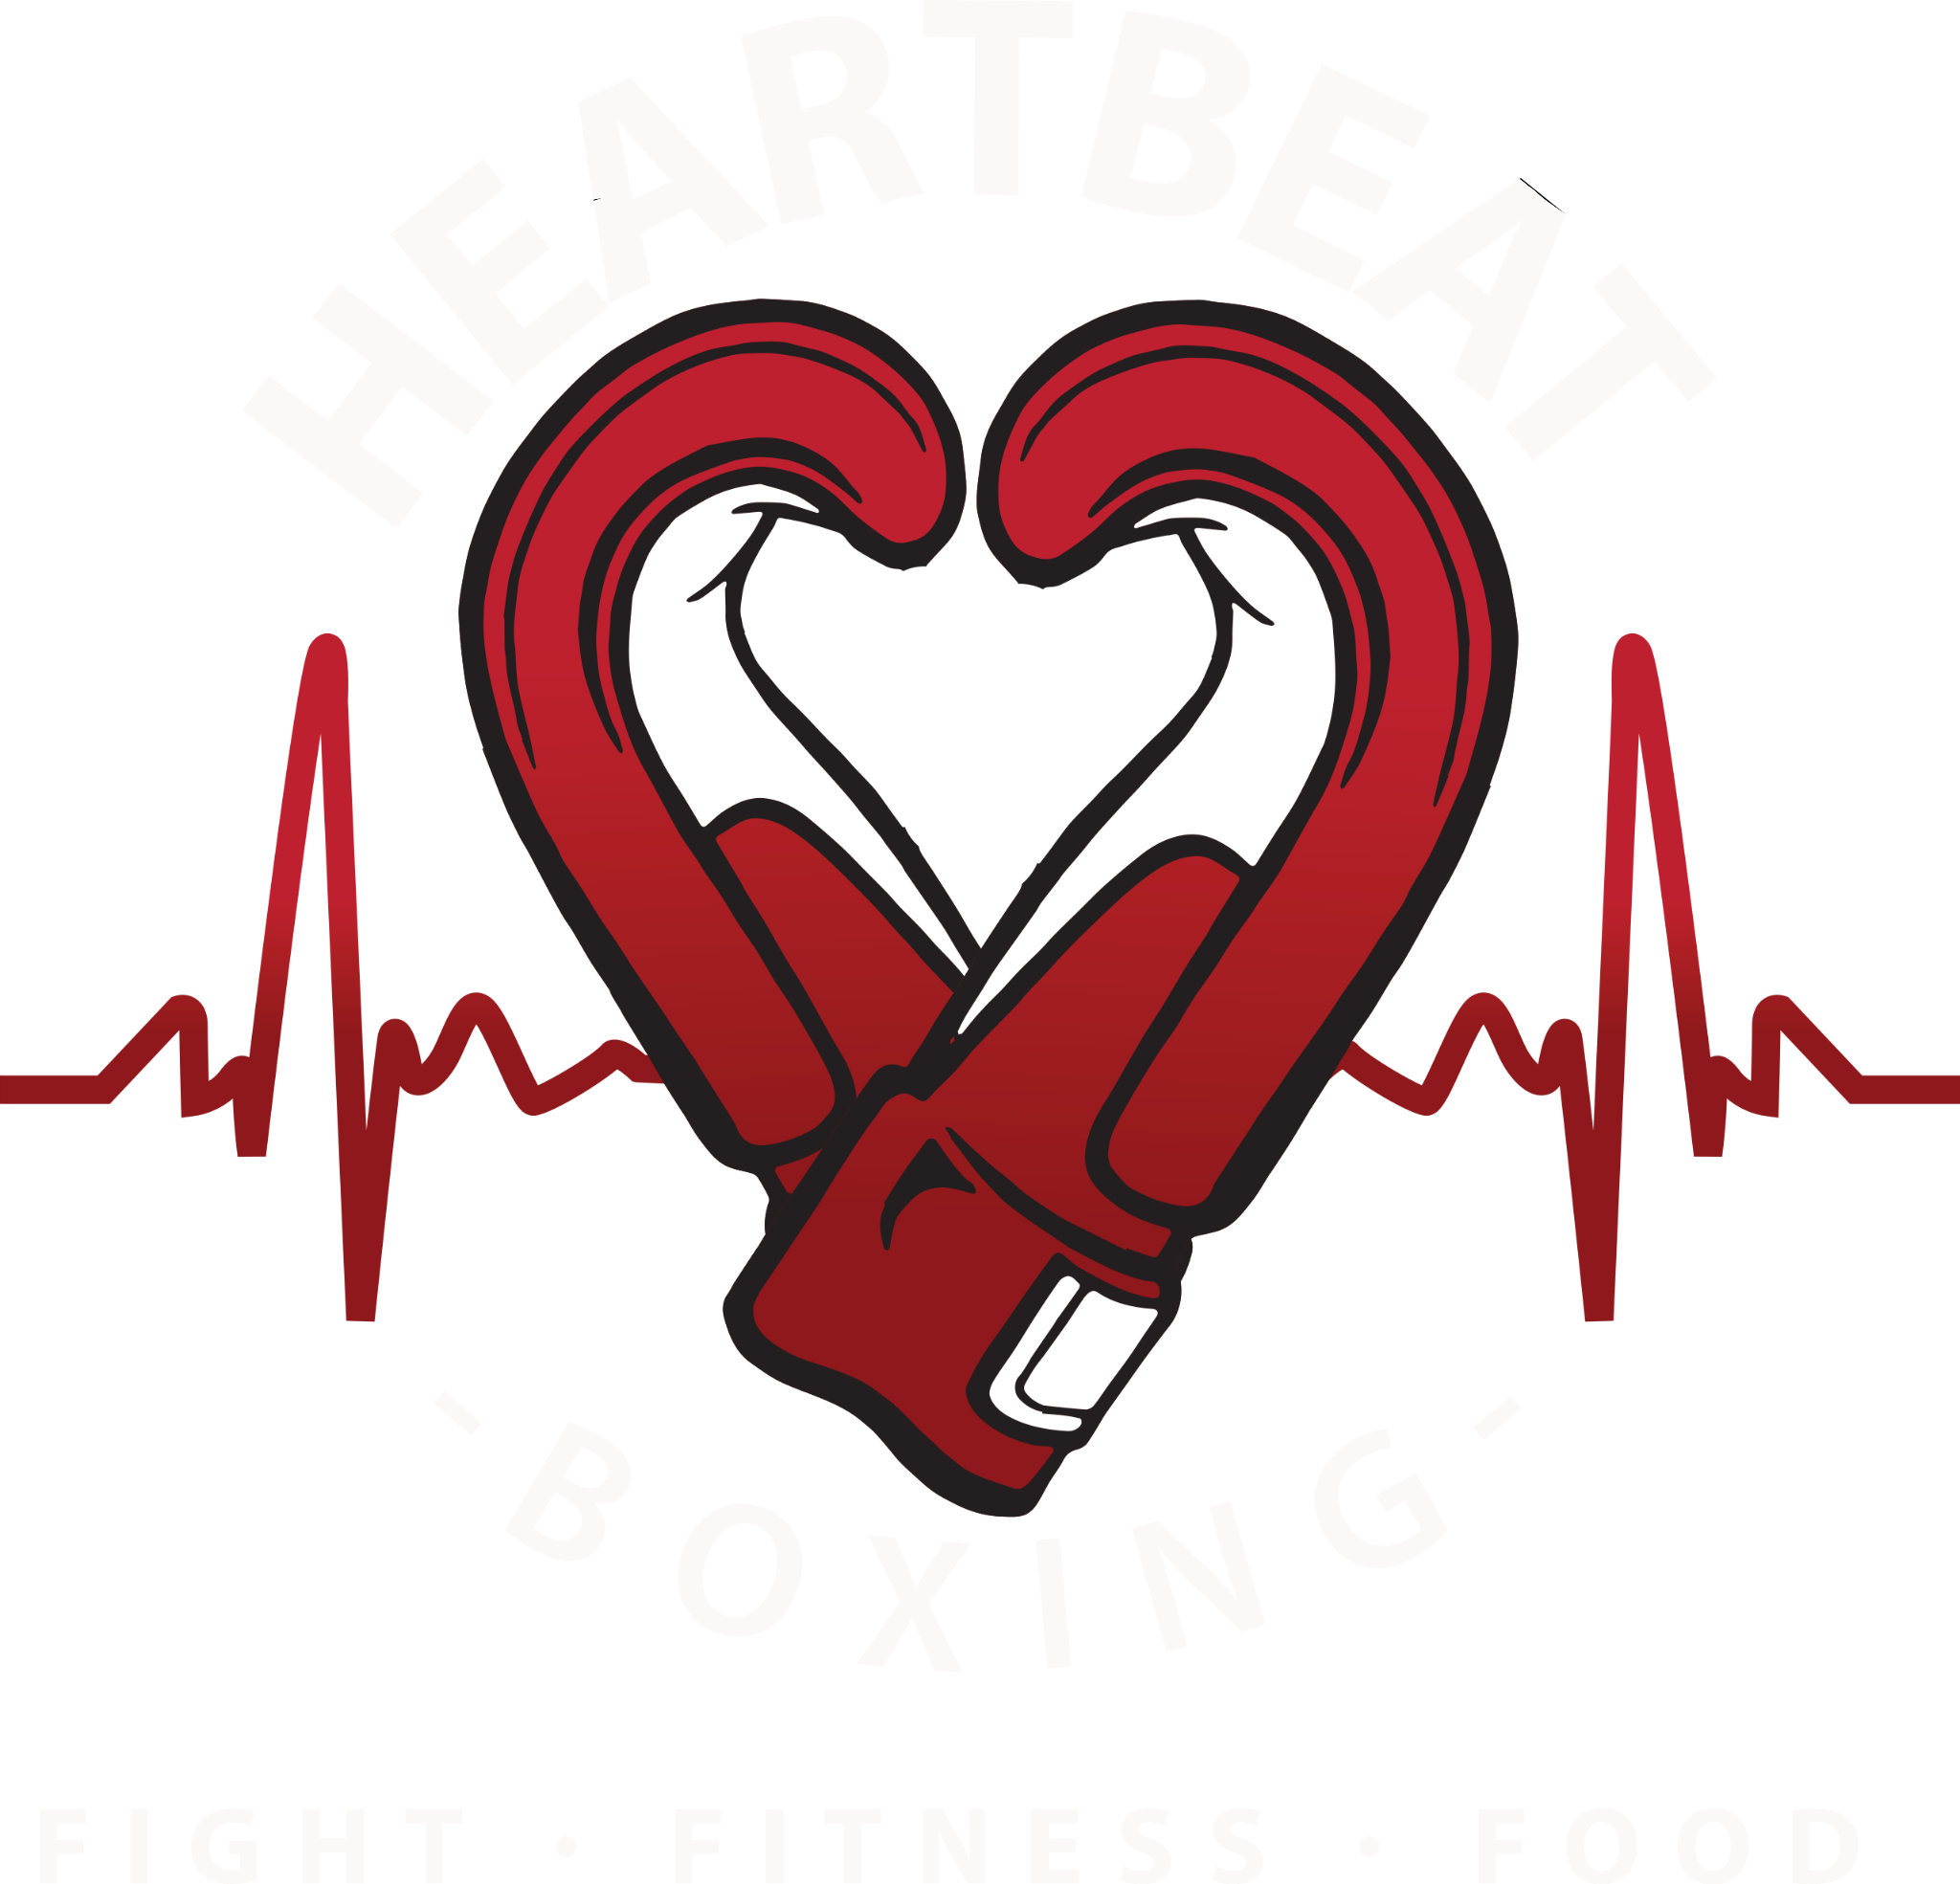 About us boxing . Heartbeat clipart rapid heartbeat